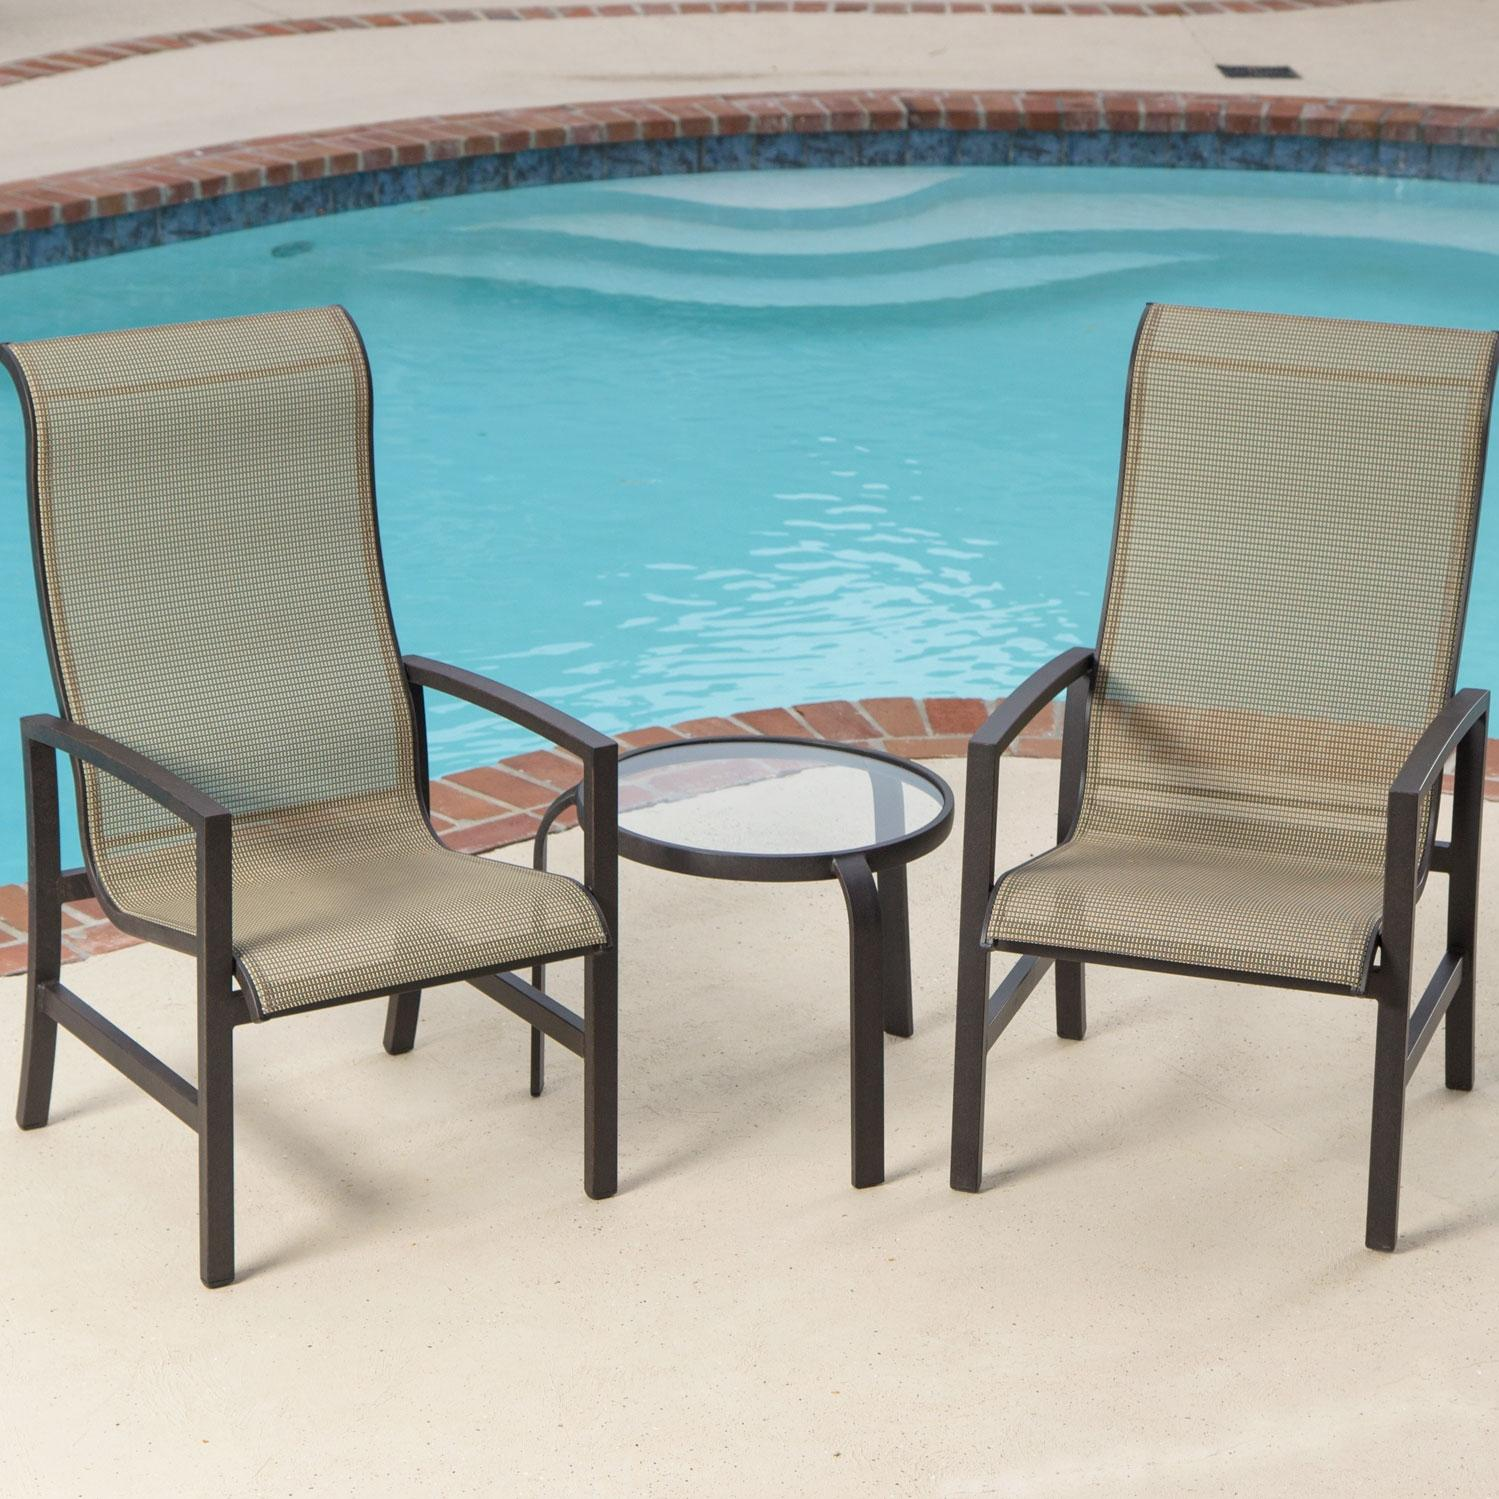 Picture of Acadia 2-Person Sling Patio Bistro Set With Glass Table By Lakeview Outdoor Designs